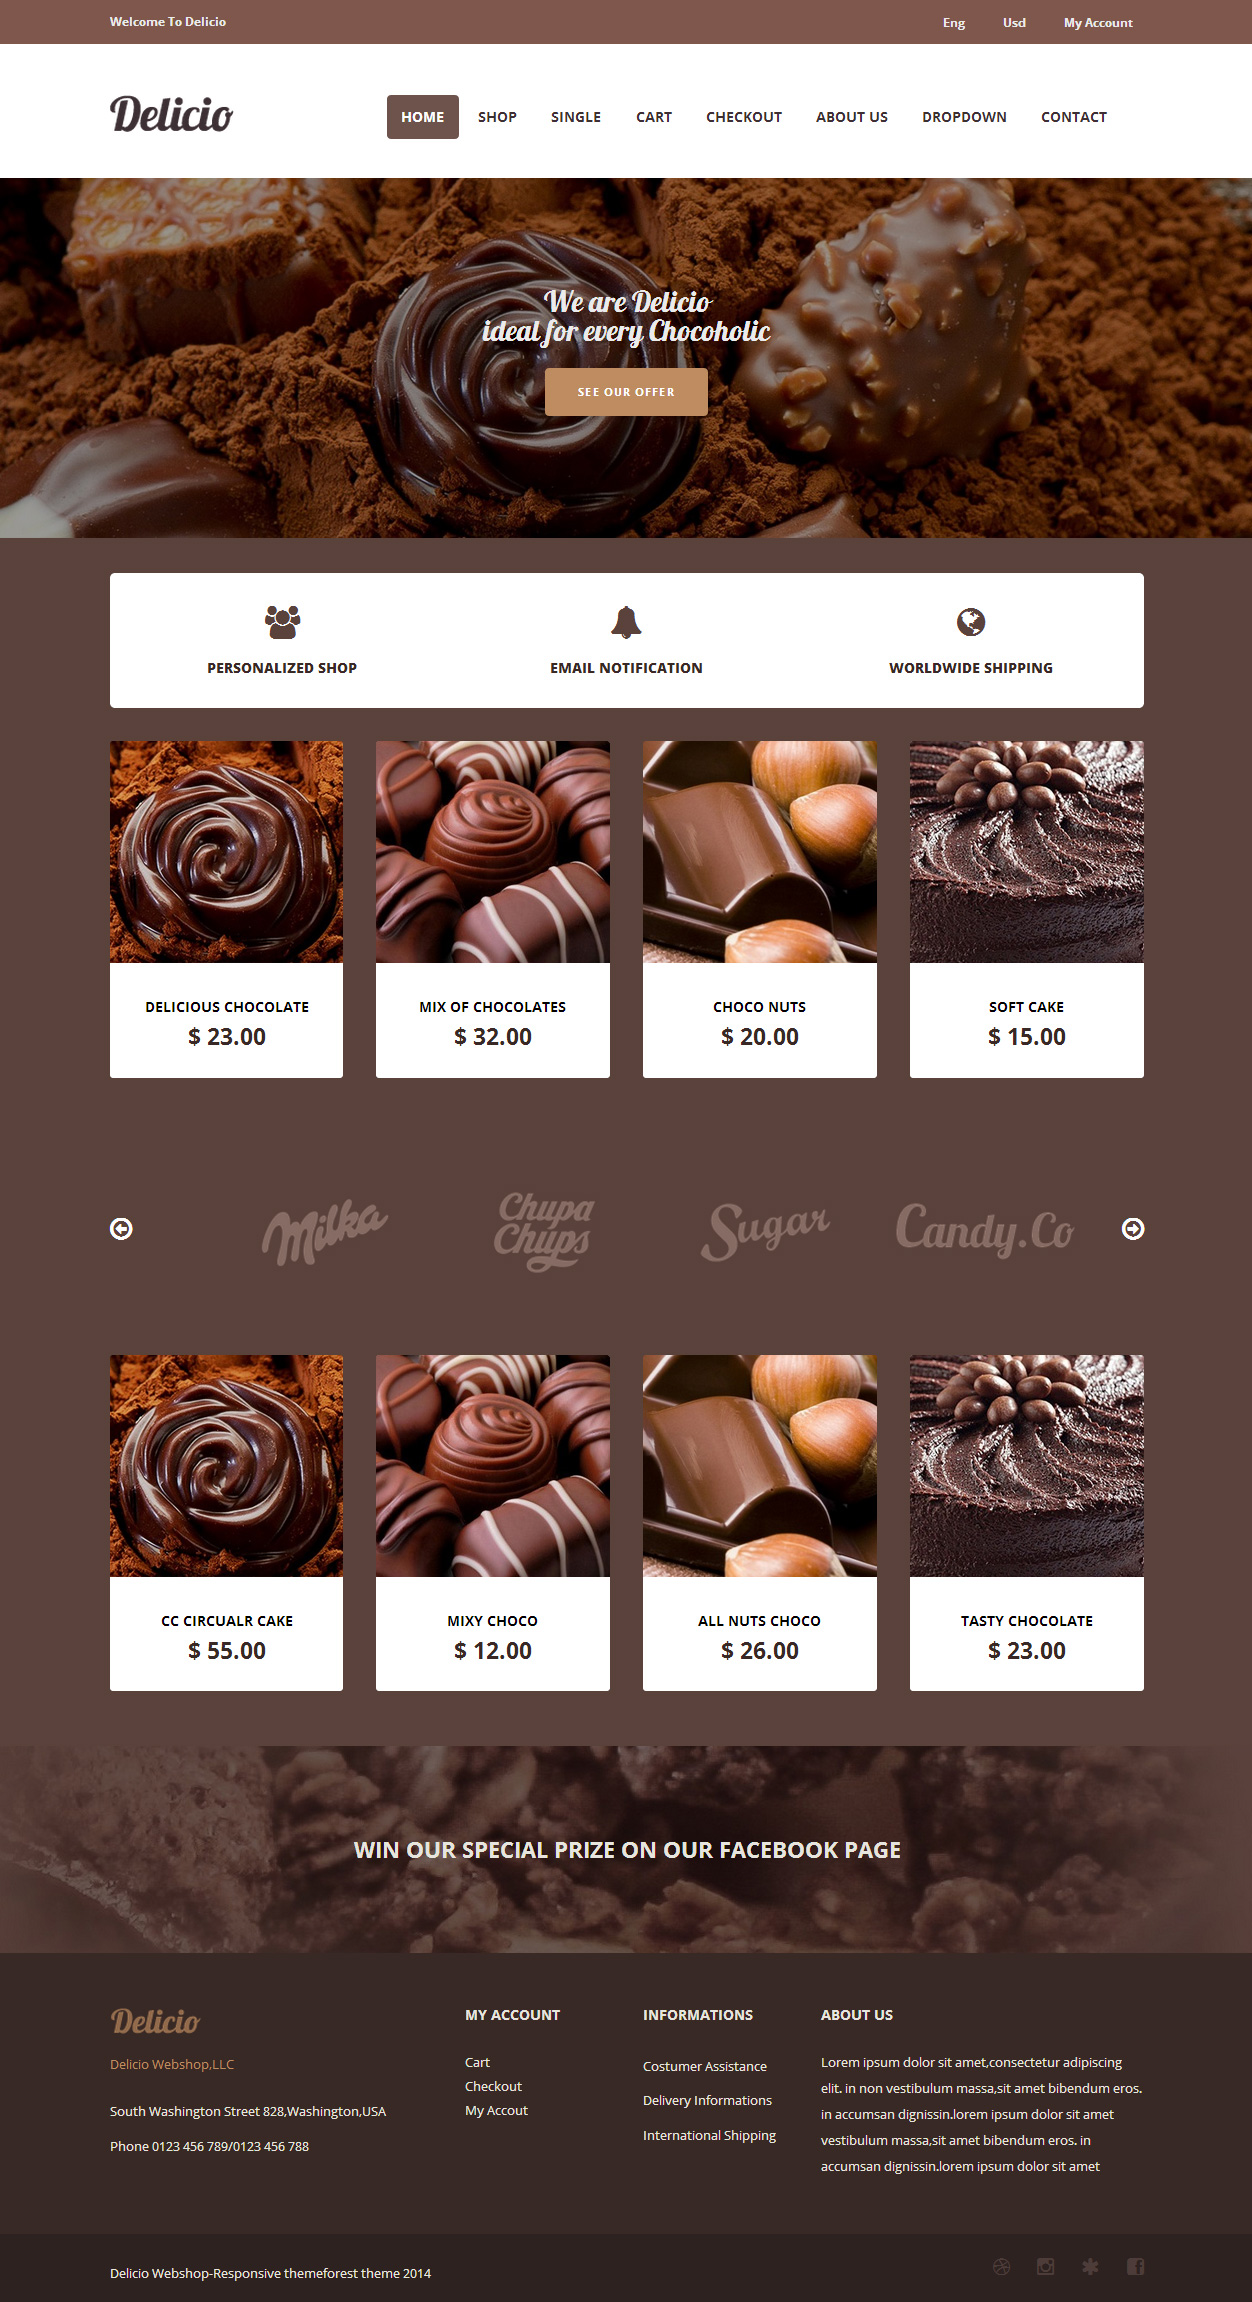 10 best html5 bakery website templates in 2017 responsive miracle delicio bakery website templates pronofoot35fo Image collections